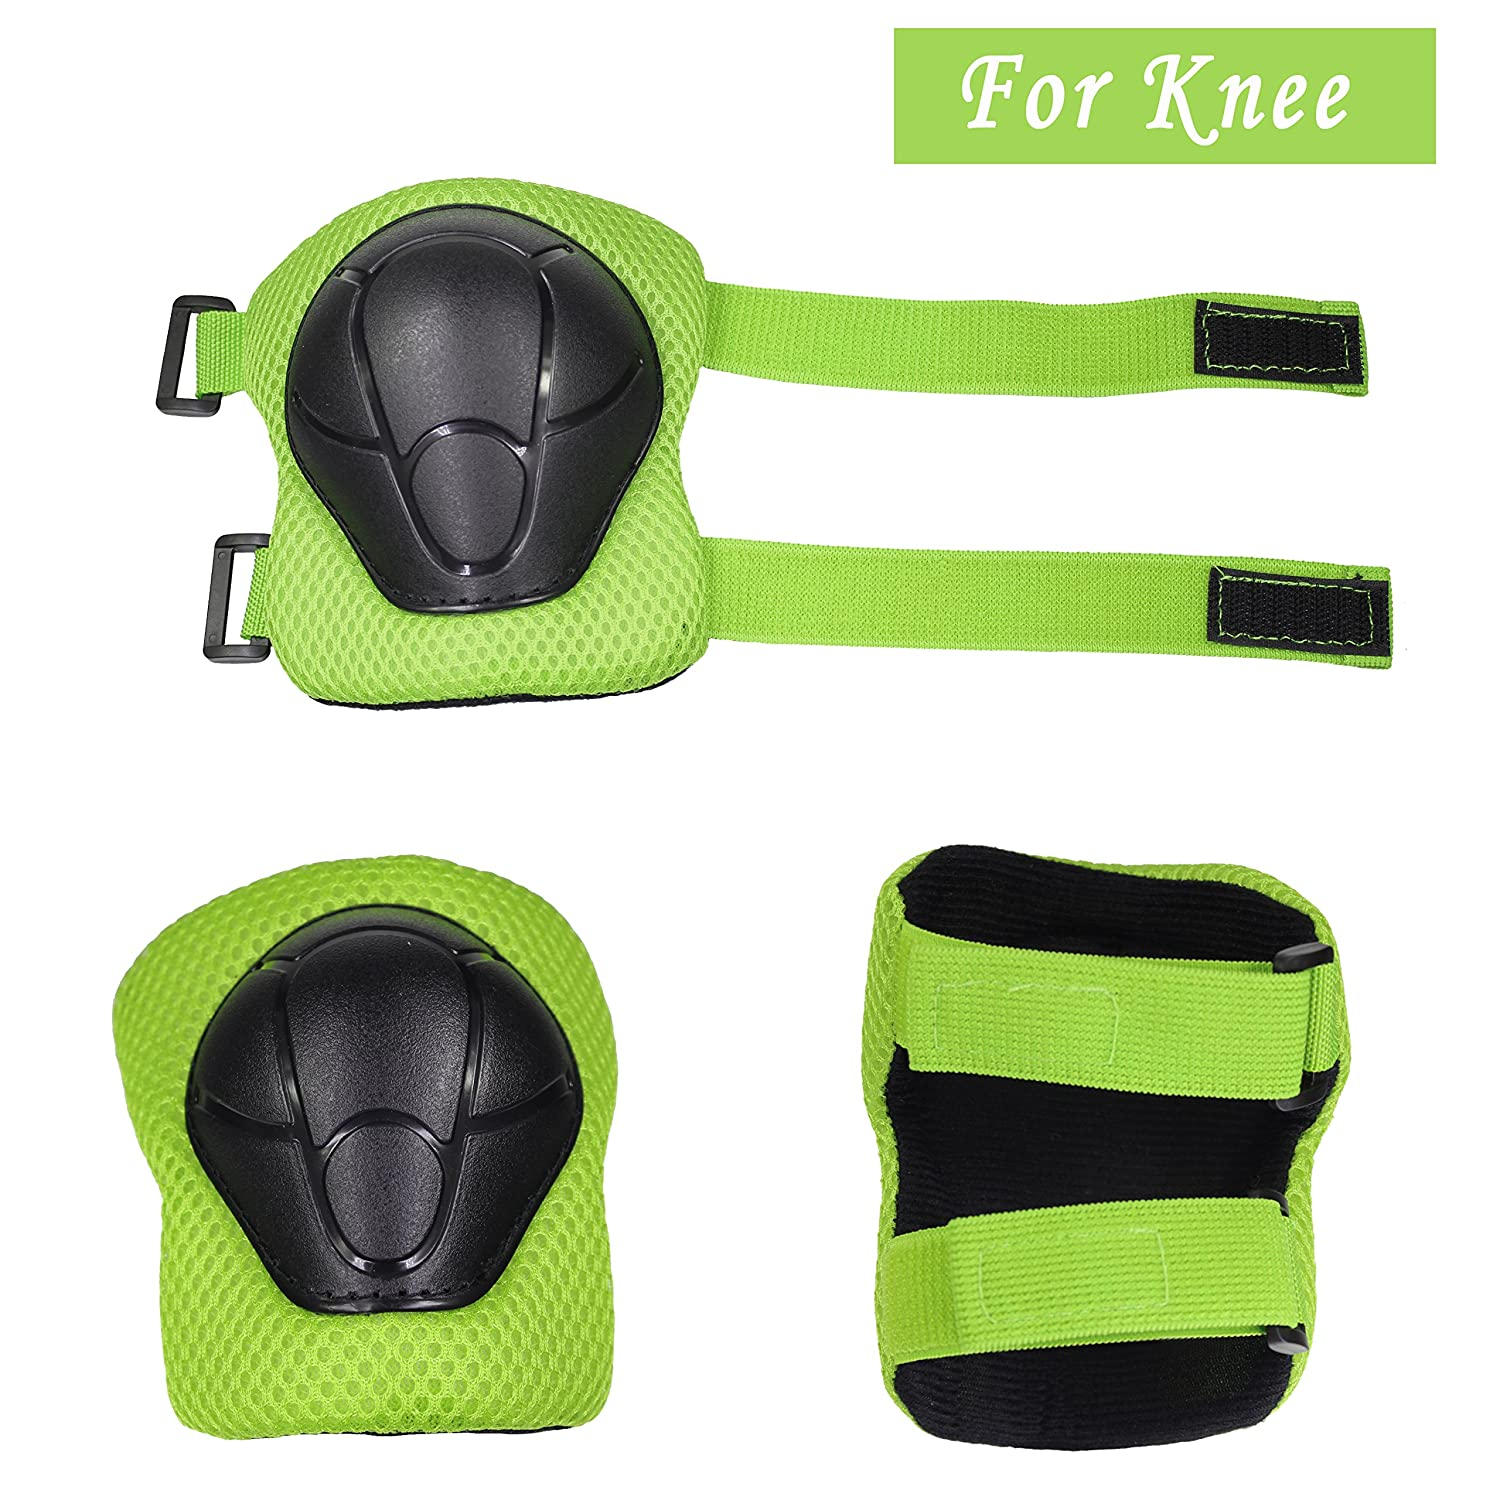 Dostar Kids Adjustable Sports Safety Protective Gear Set Children Knee Pads Elbow Roller Wrist Guards for Skating Cycling and Other Outdoor Sports as Birthday